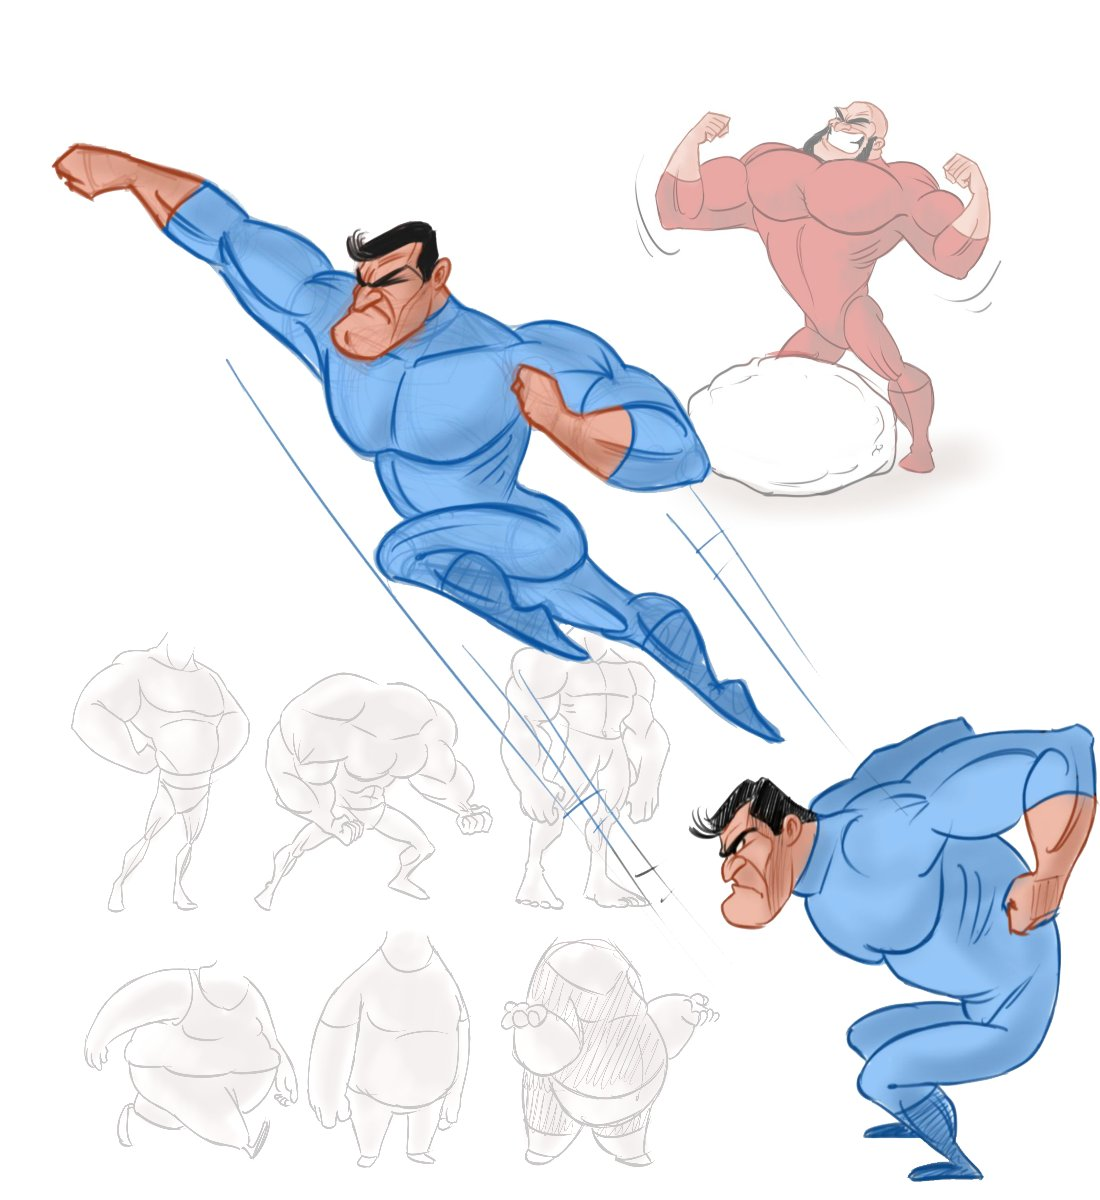 How to Draw Macho Men and Overweight Characters